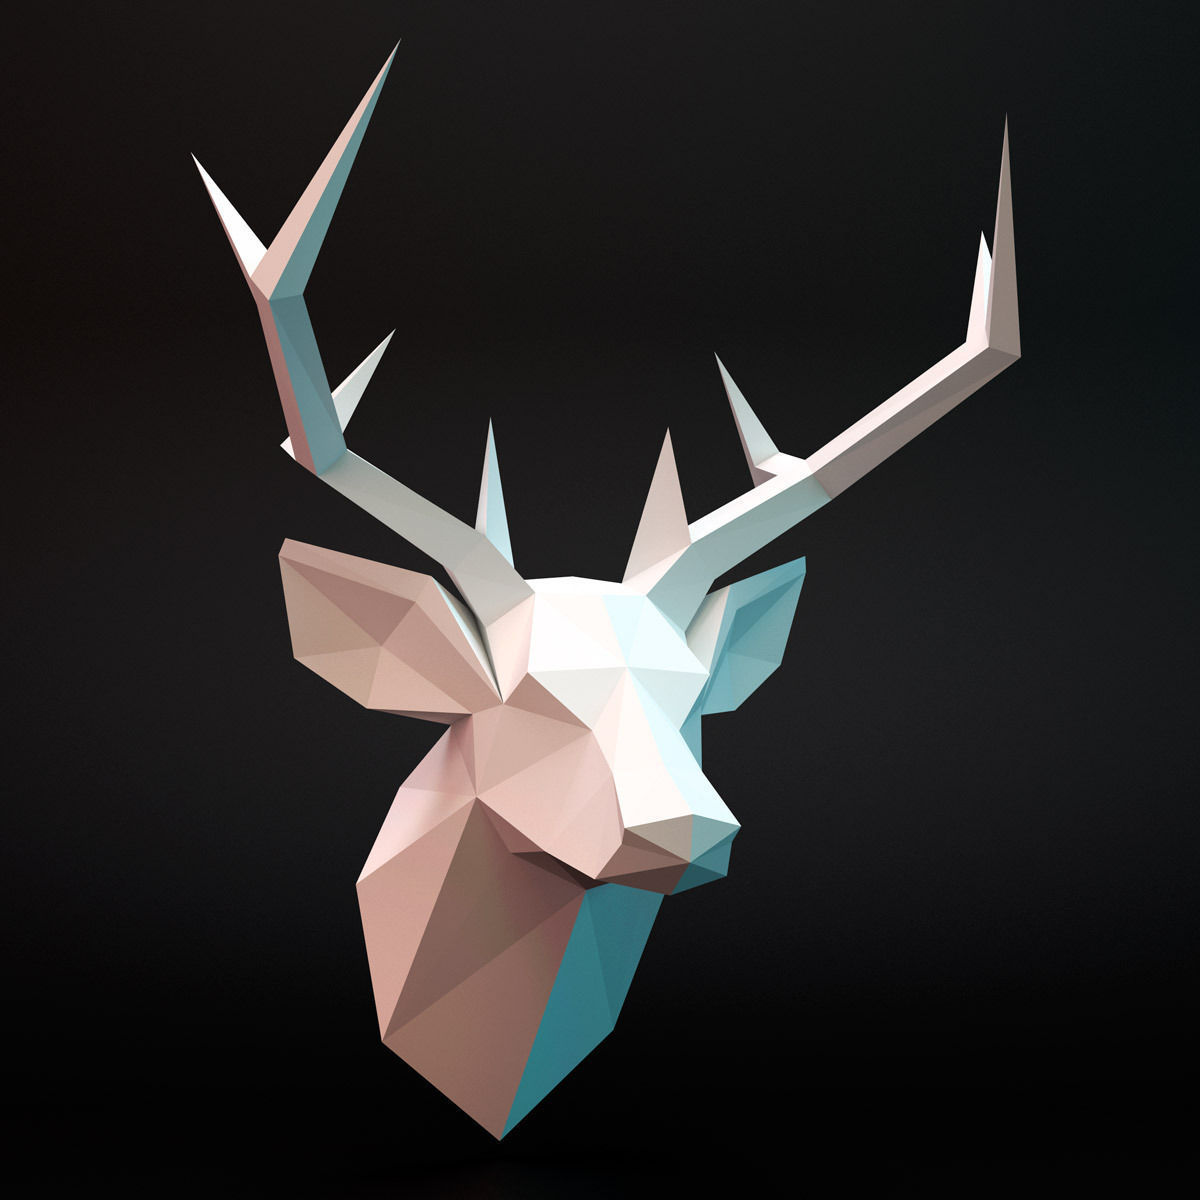 Animated Christmas Wallpaper For Iphone Deer Head Low Poly 3d Model Game Ready Max Fbx